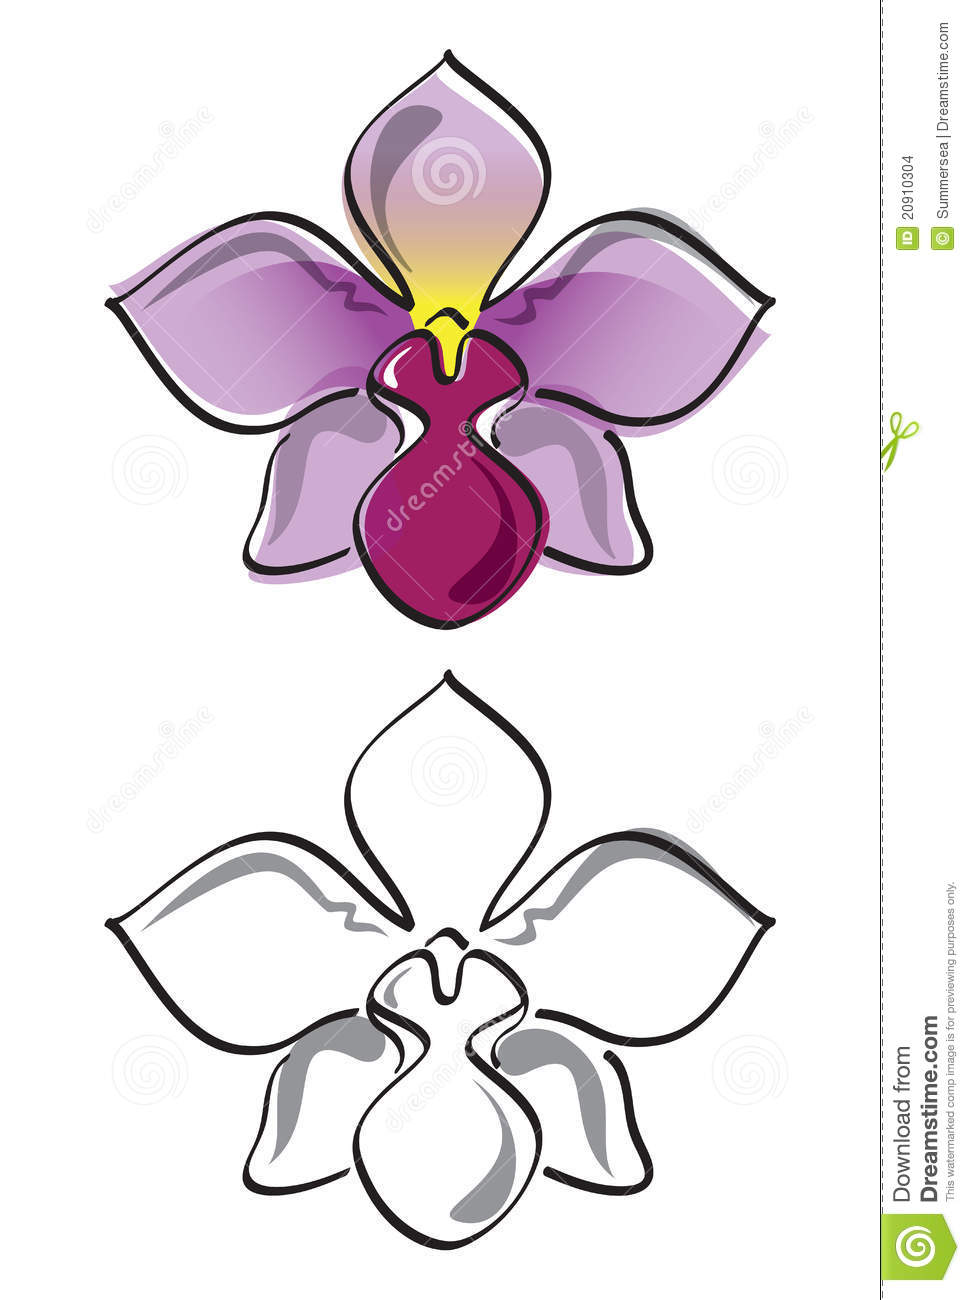 orchid flower vector stock images image 20910304 vector brush strokes free vector brush strokes eps